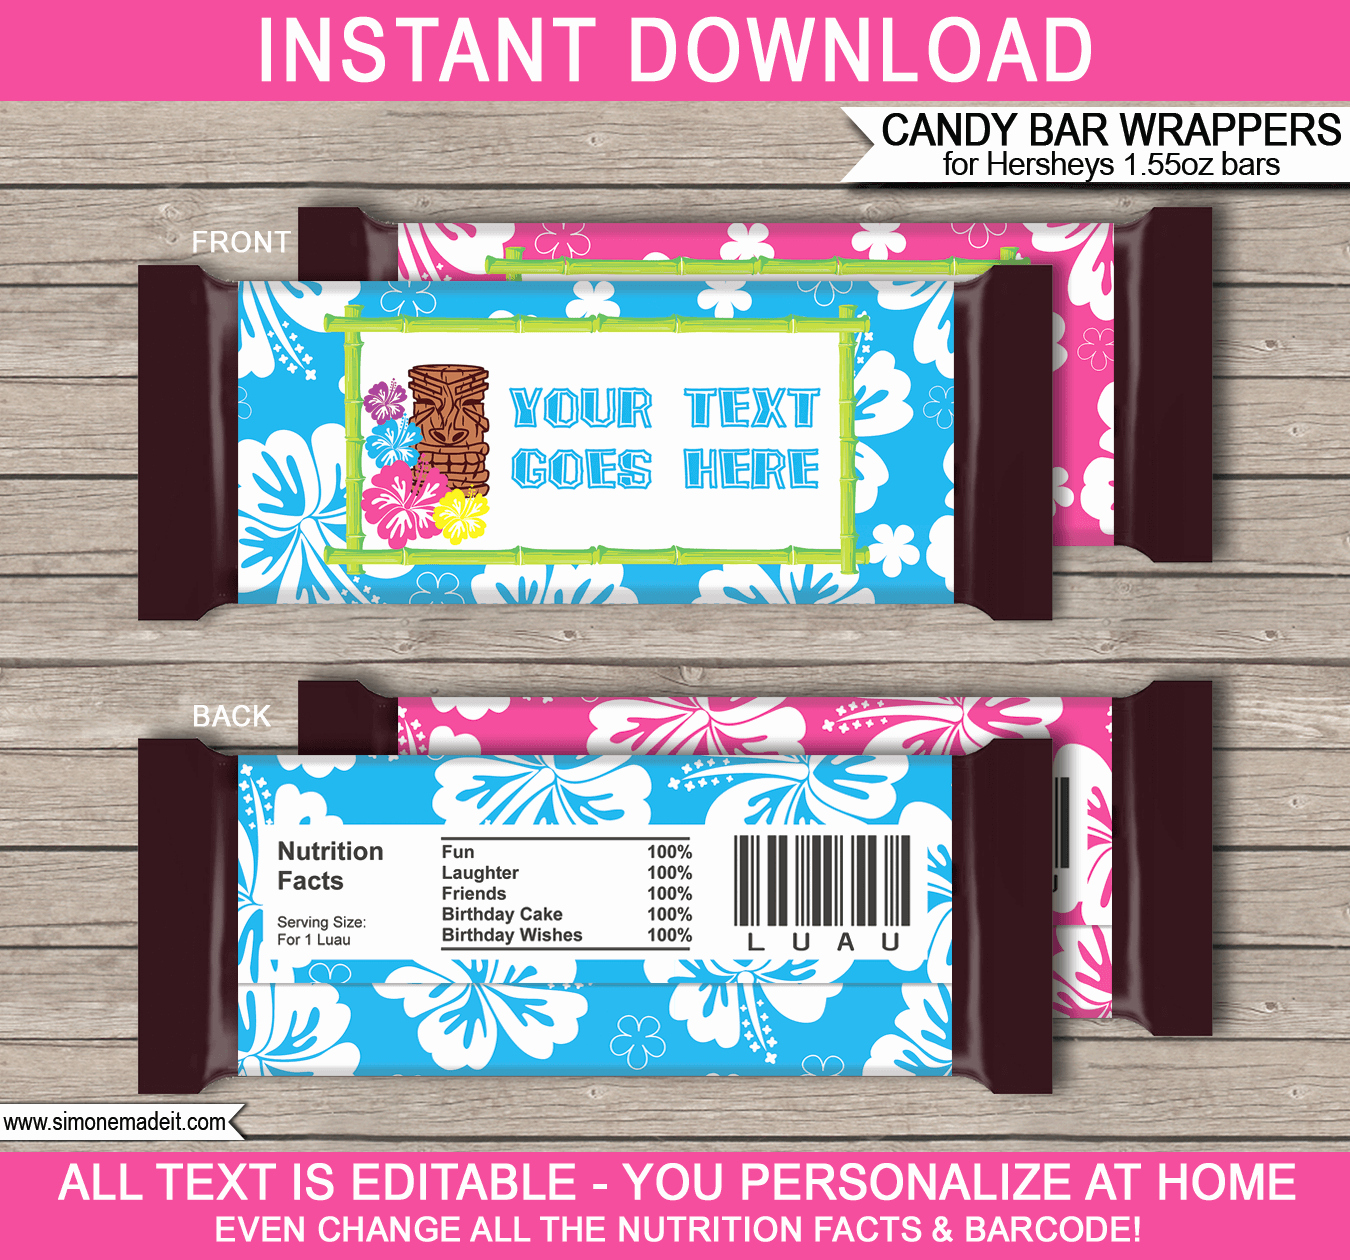 Personalized Candy Wrapper Template Inspirational Luau Hershey Candy Bar Wrappers